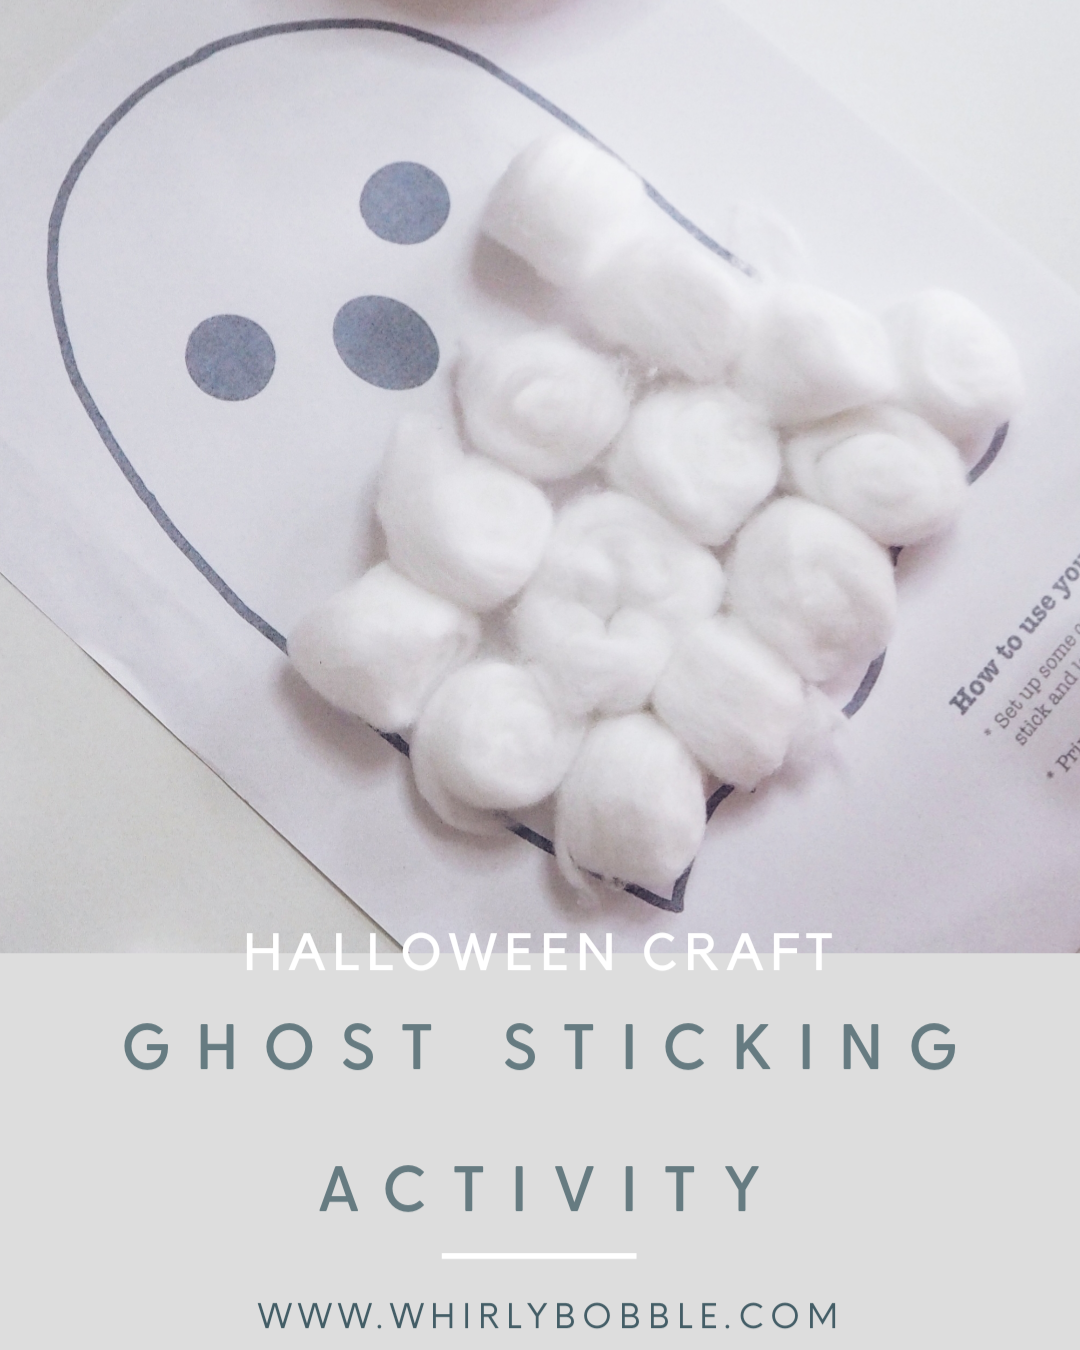 Free printable - Halloween sticking activity